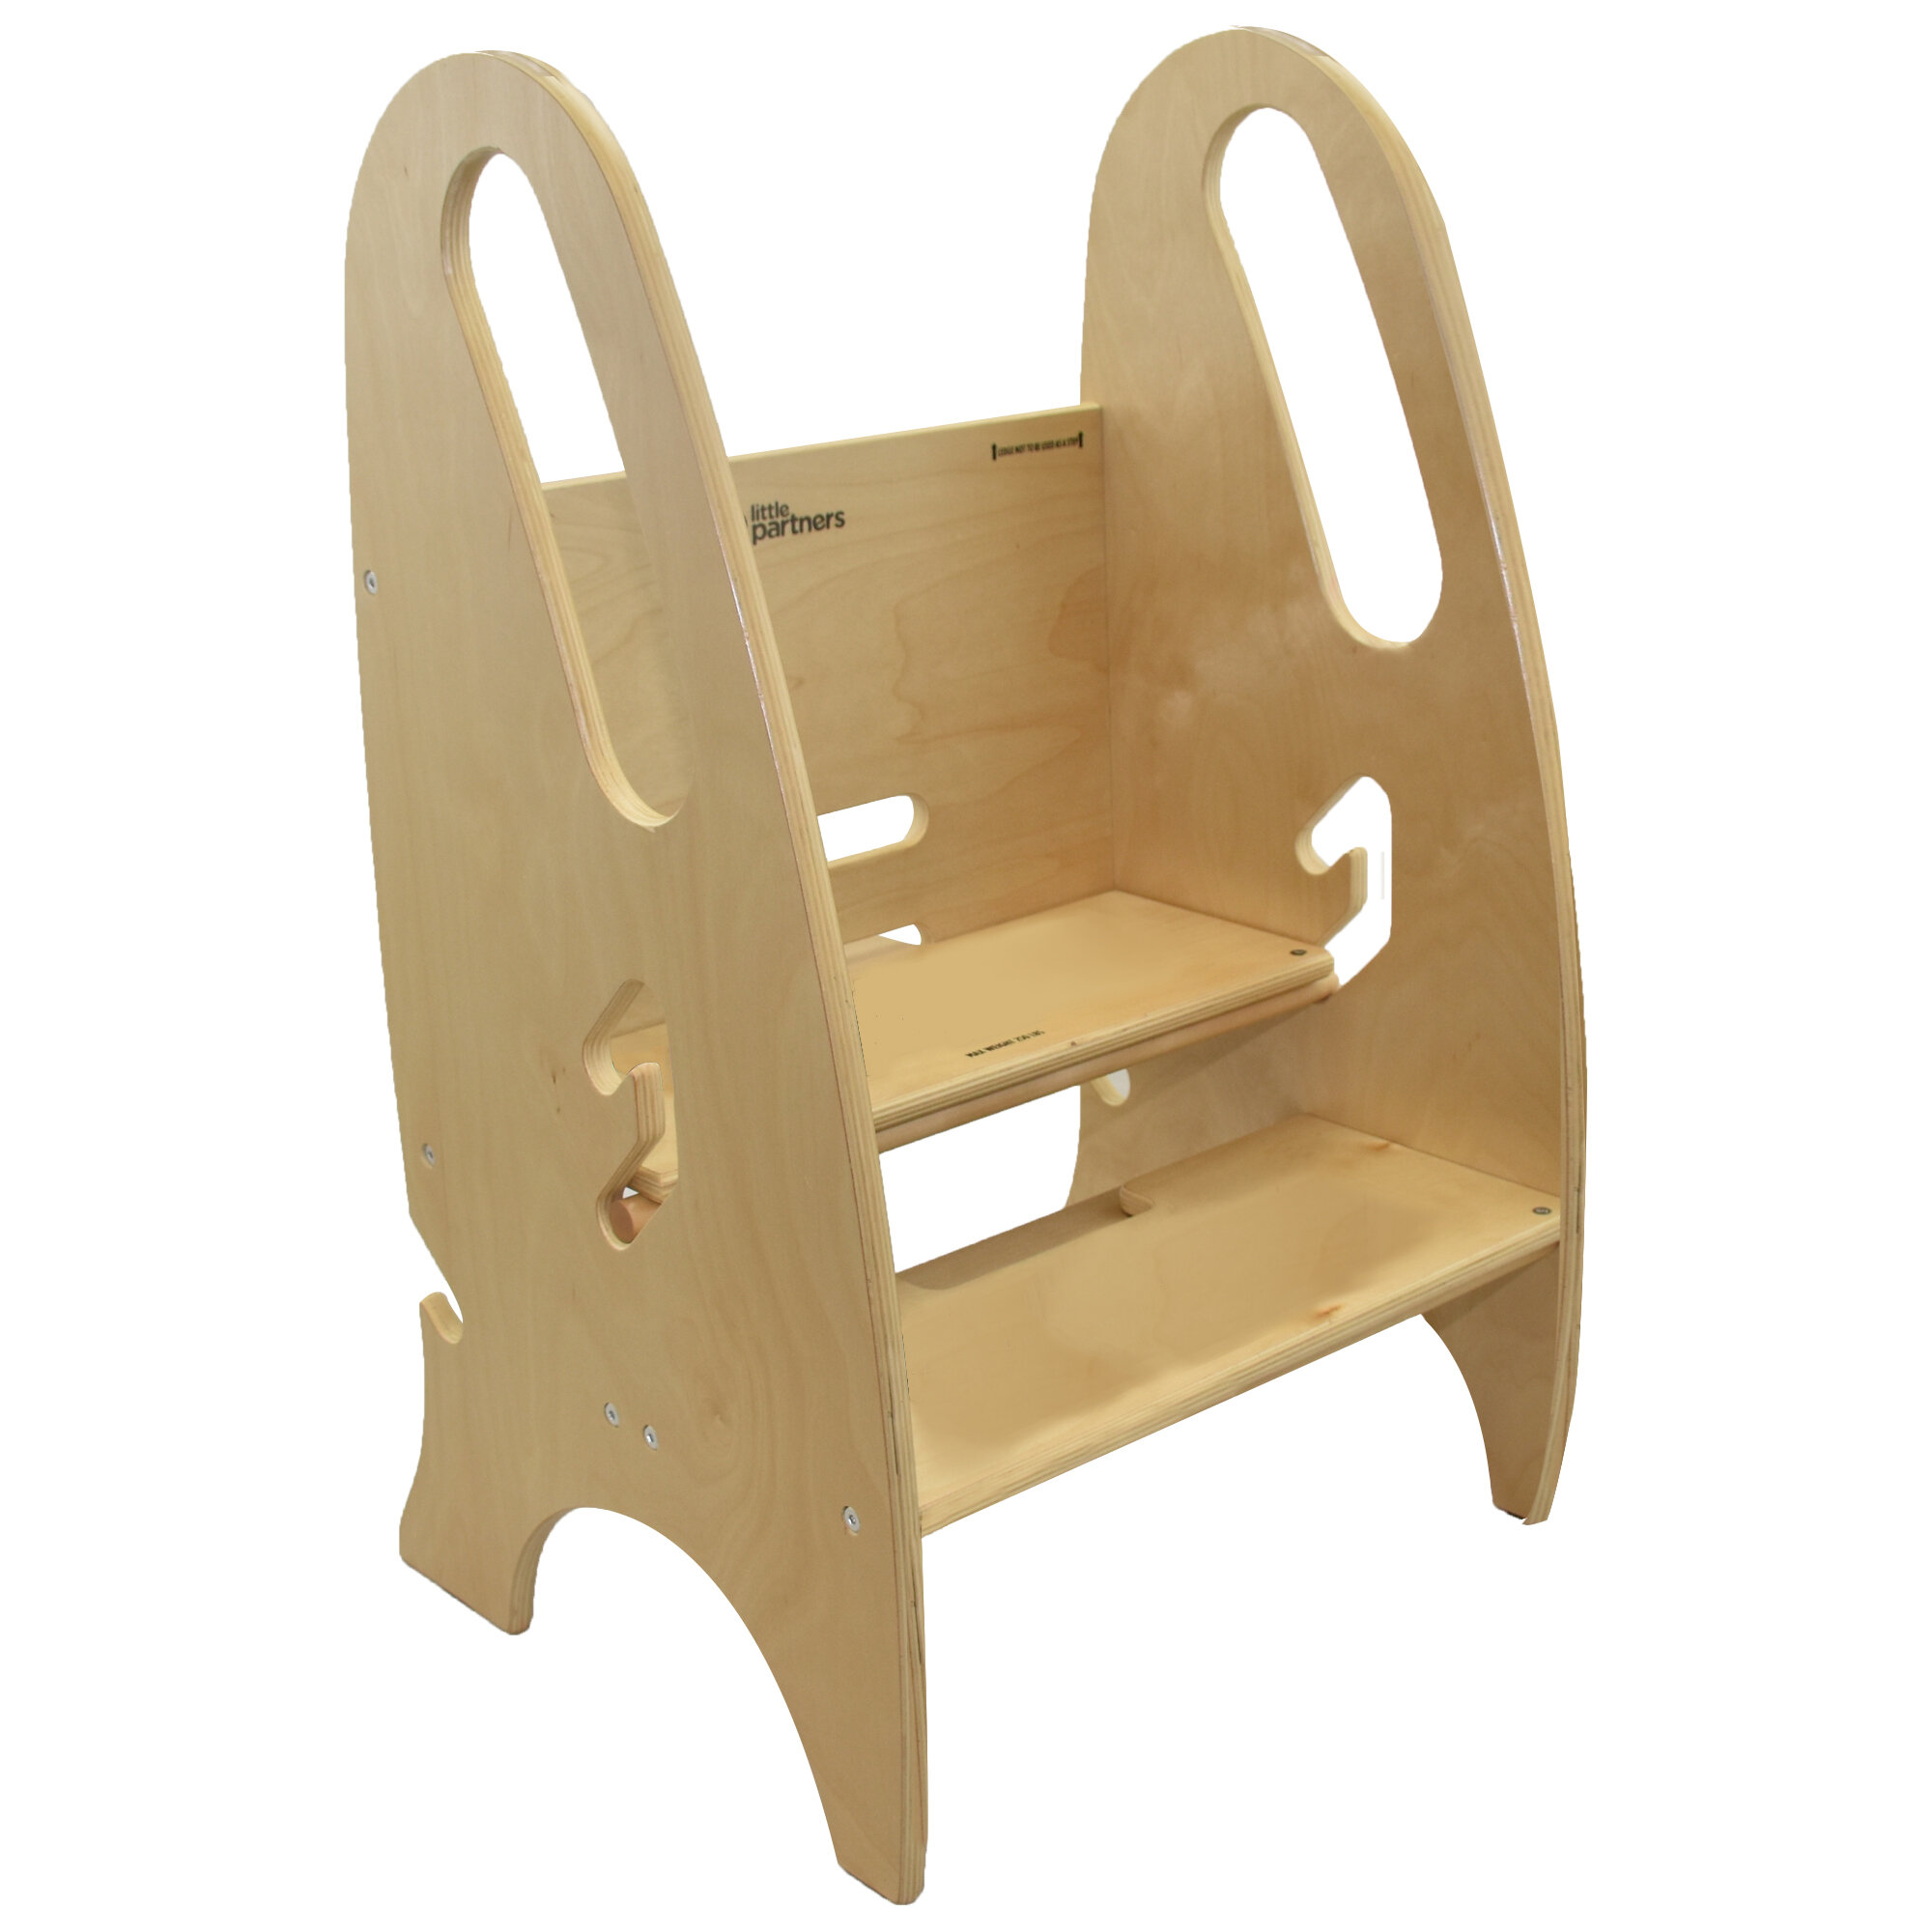 Fabulous Wood Construction Perfect For Toddlers Quality Learning Cjindustries Chair Design For Home Cjindustriesco